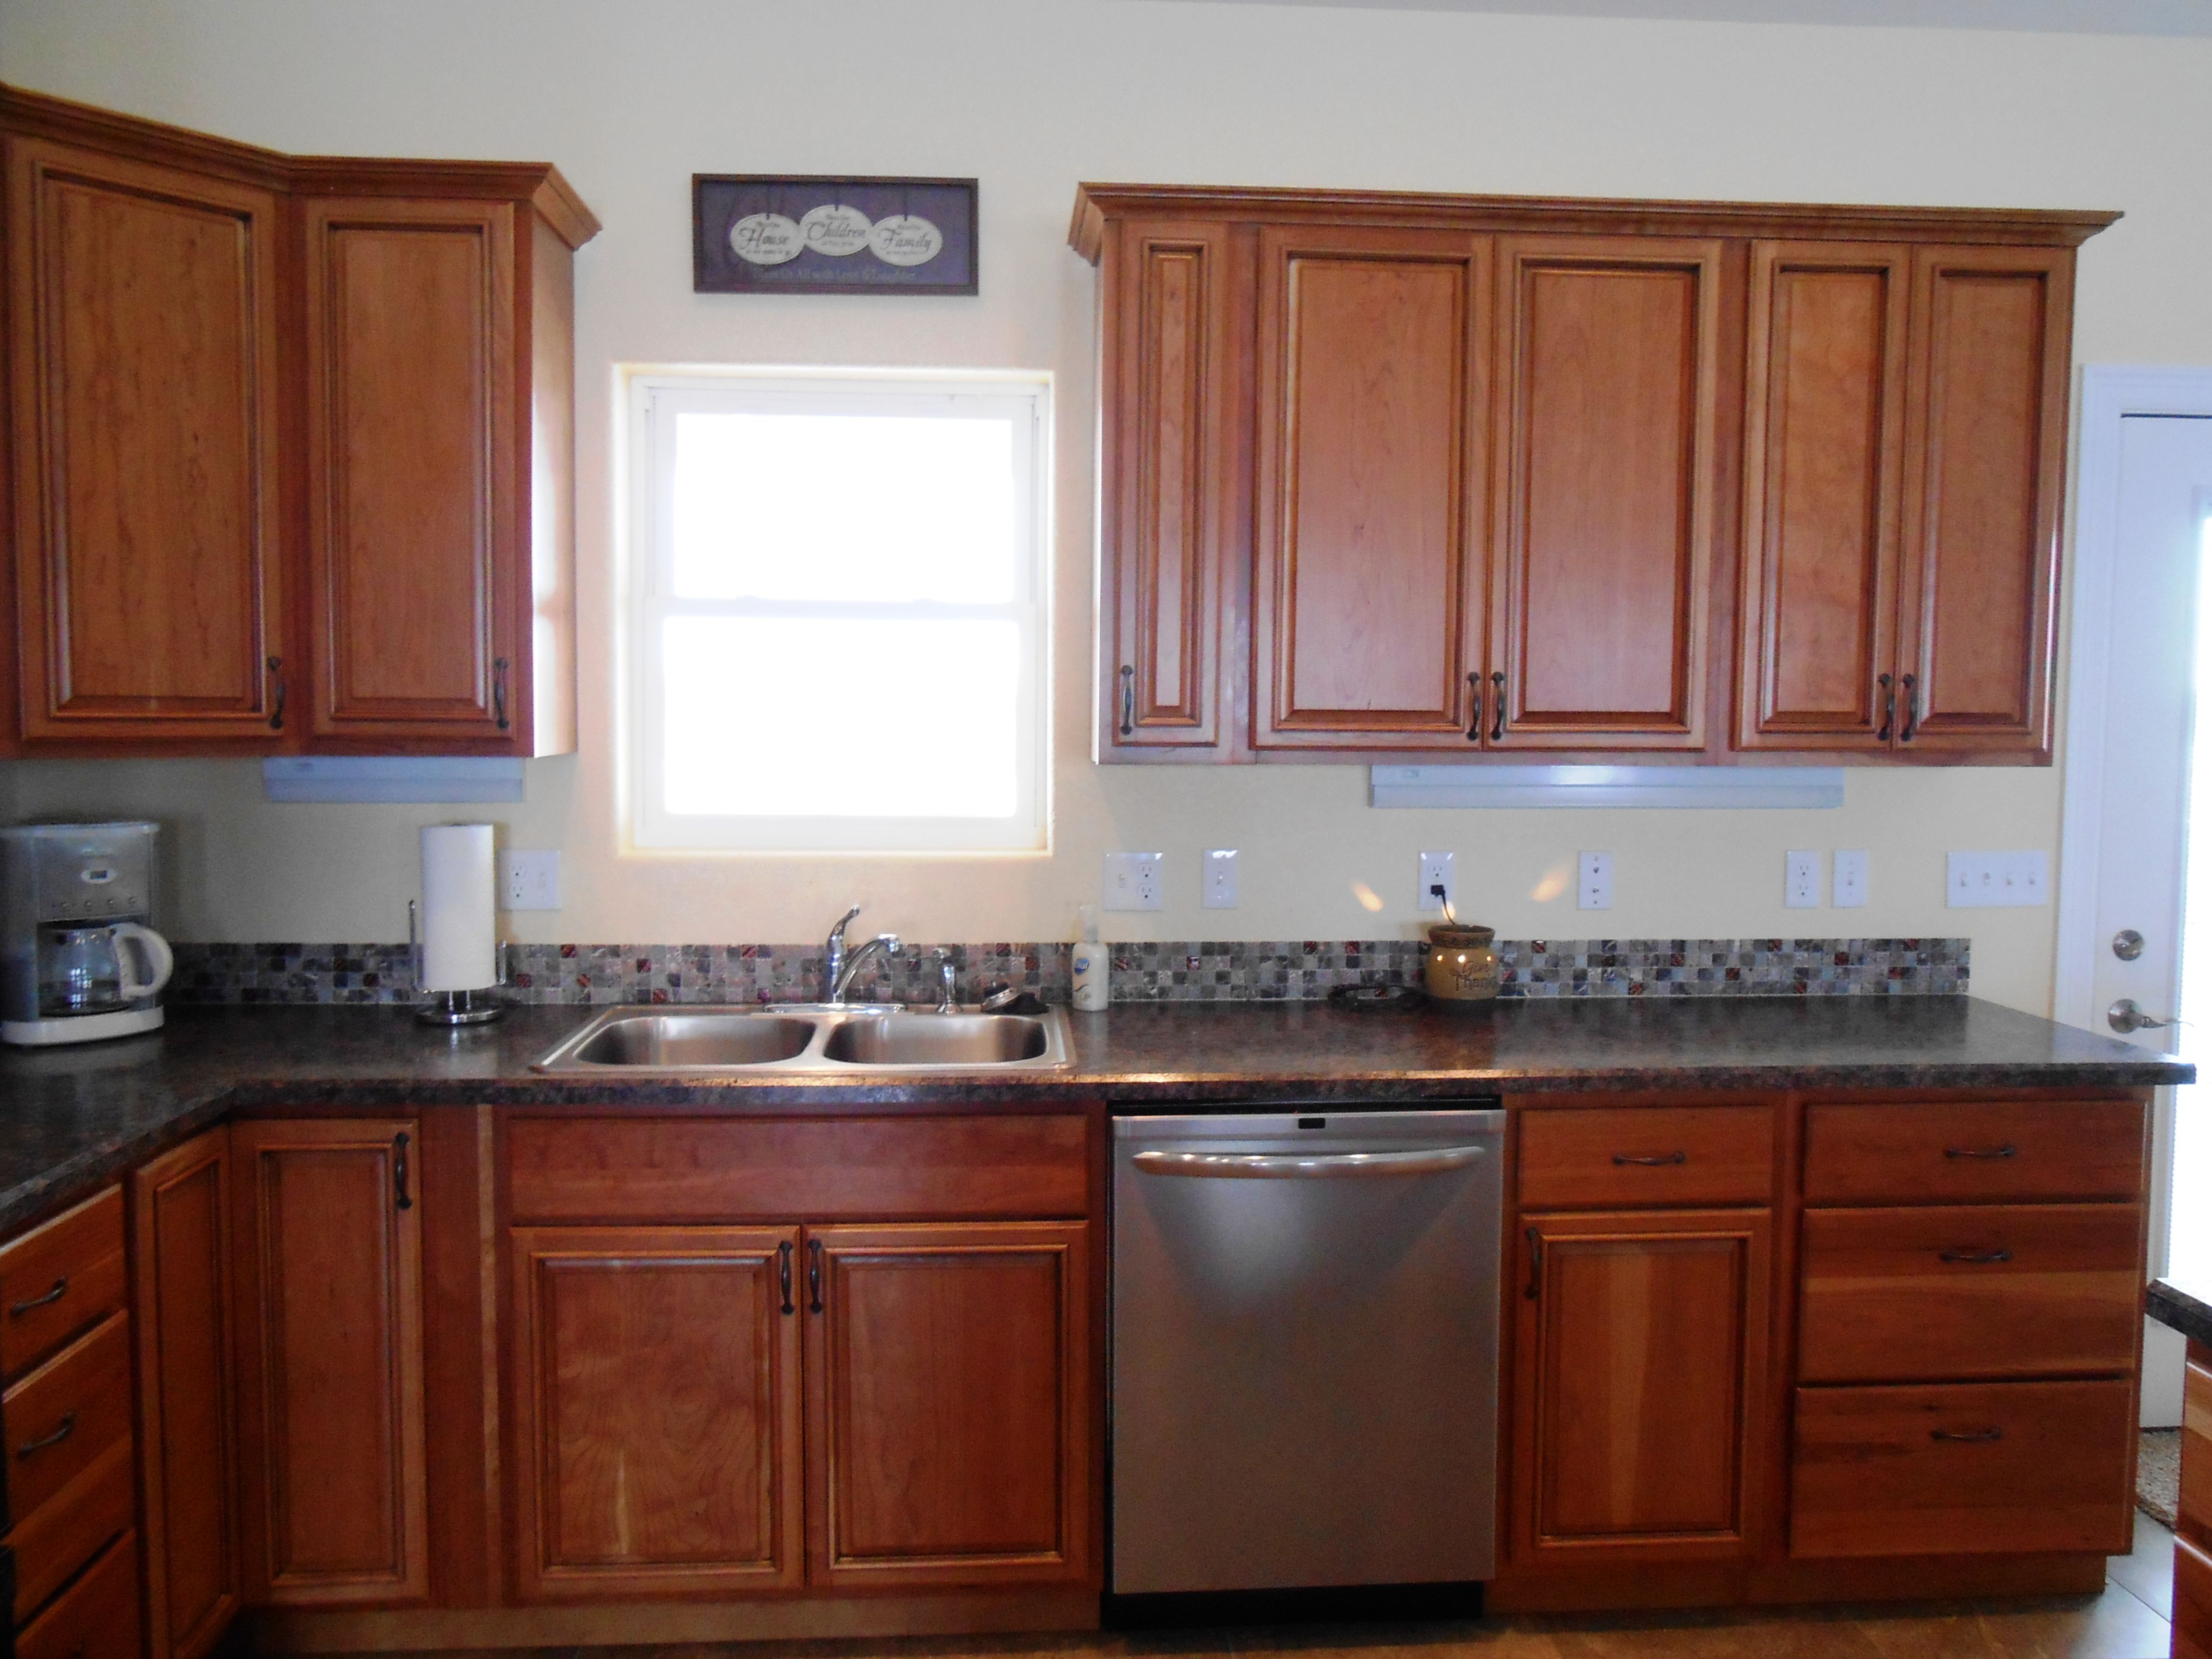 interior how kitchen my cool resnooze cabinets remodel clean house cabinet com view ideas planning to under home cherry